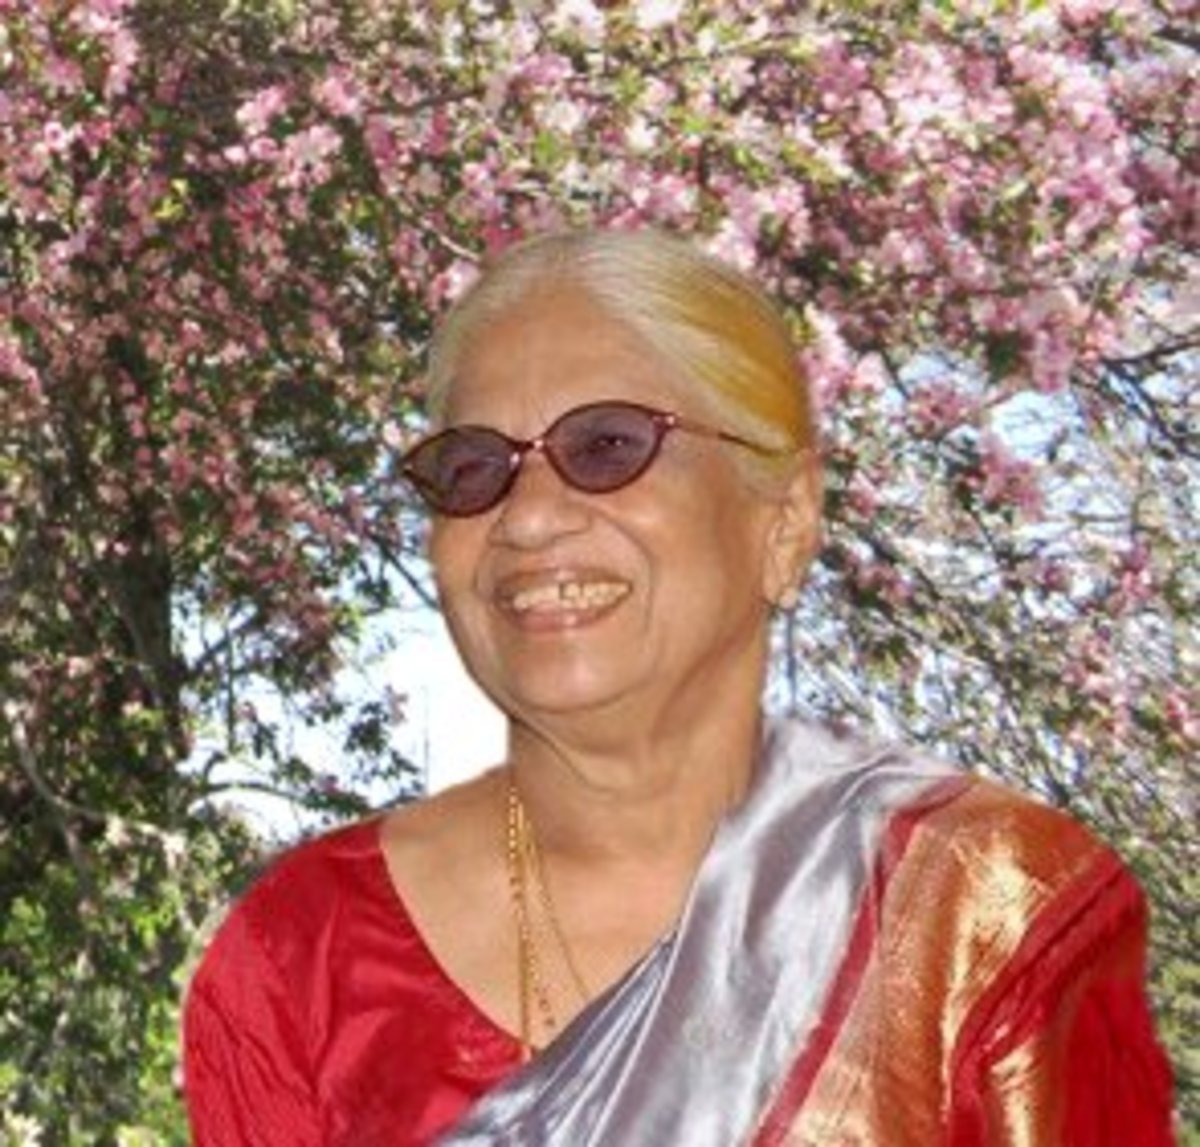 MOM - a recent picture